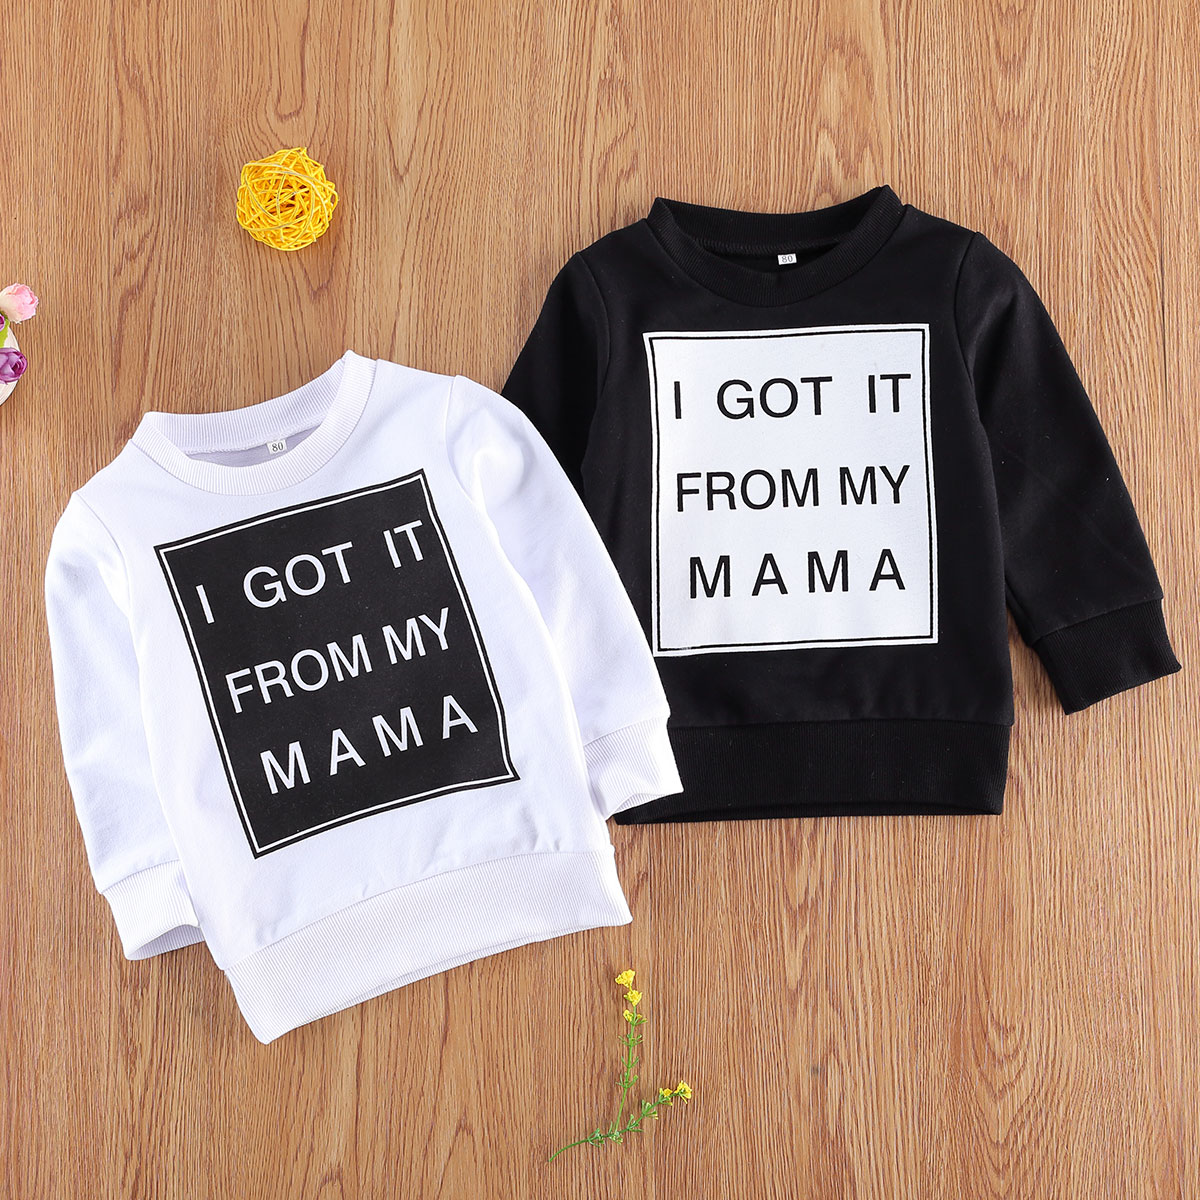 2020 infant toddler Newborn Long Sleeve Letter Print Top Fashion Long Sleeve Tops for Baby Girls Boys casual clothing  outfits